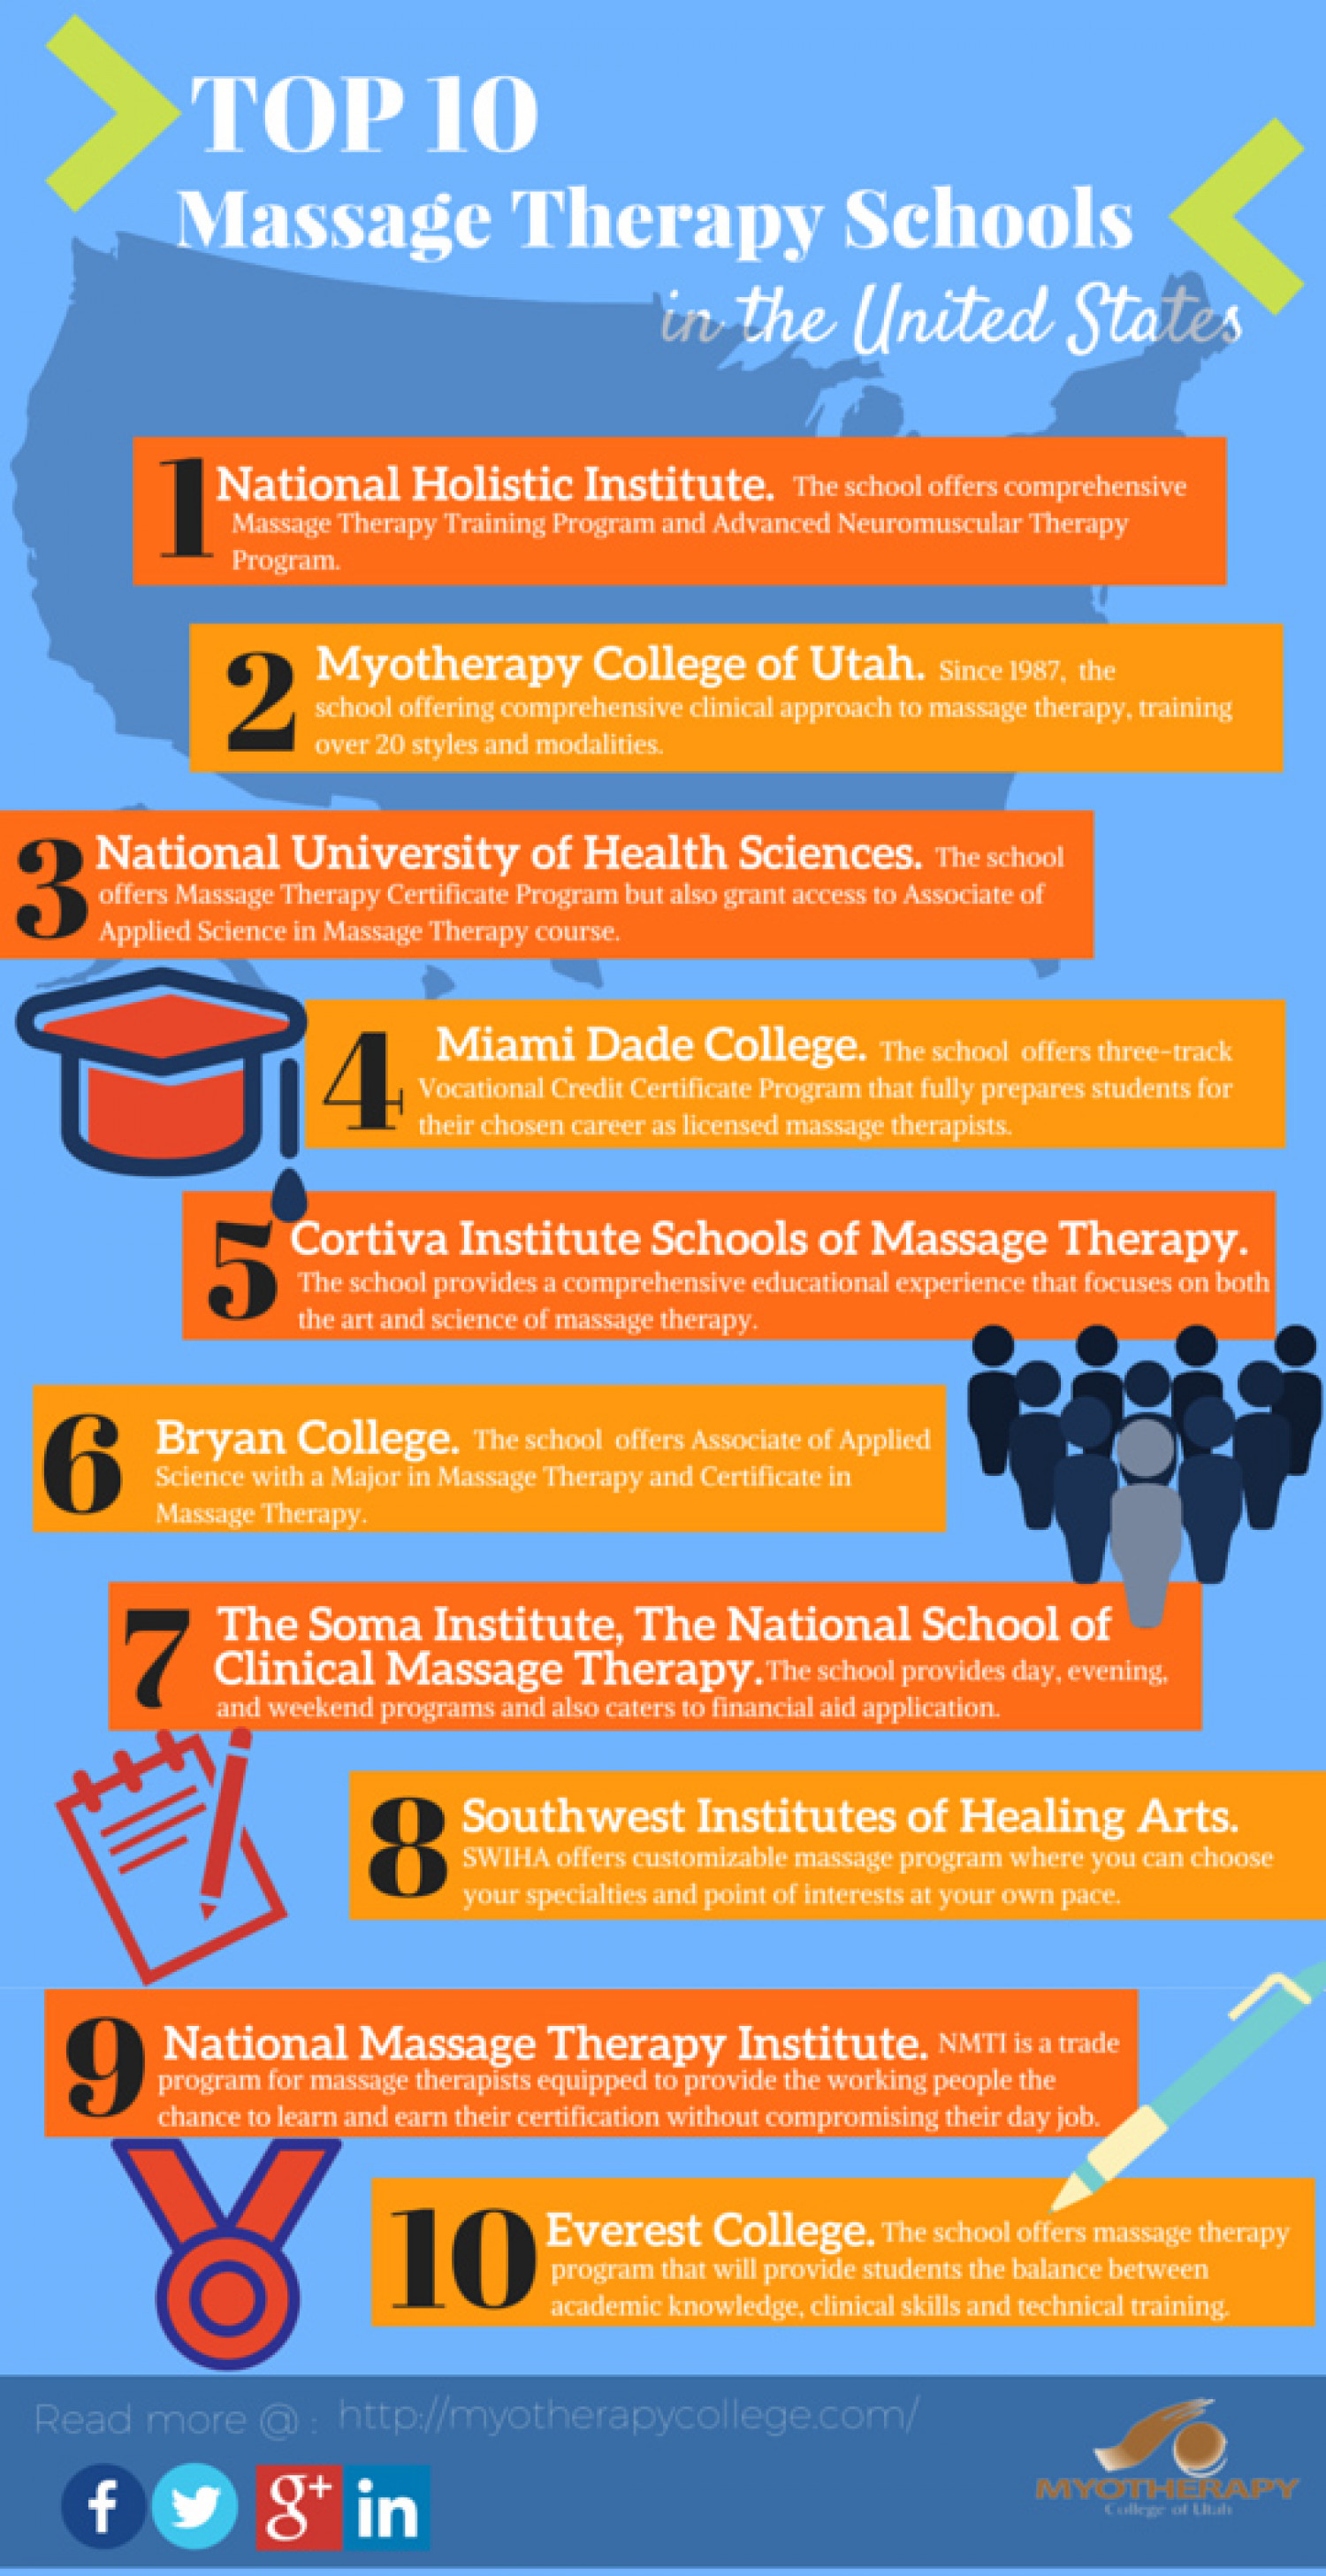 Top 10 Massage Therapy Schools In The United States Visual